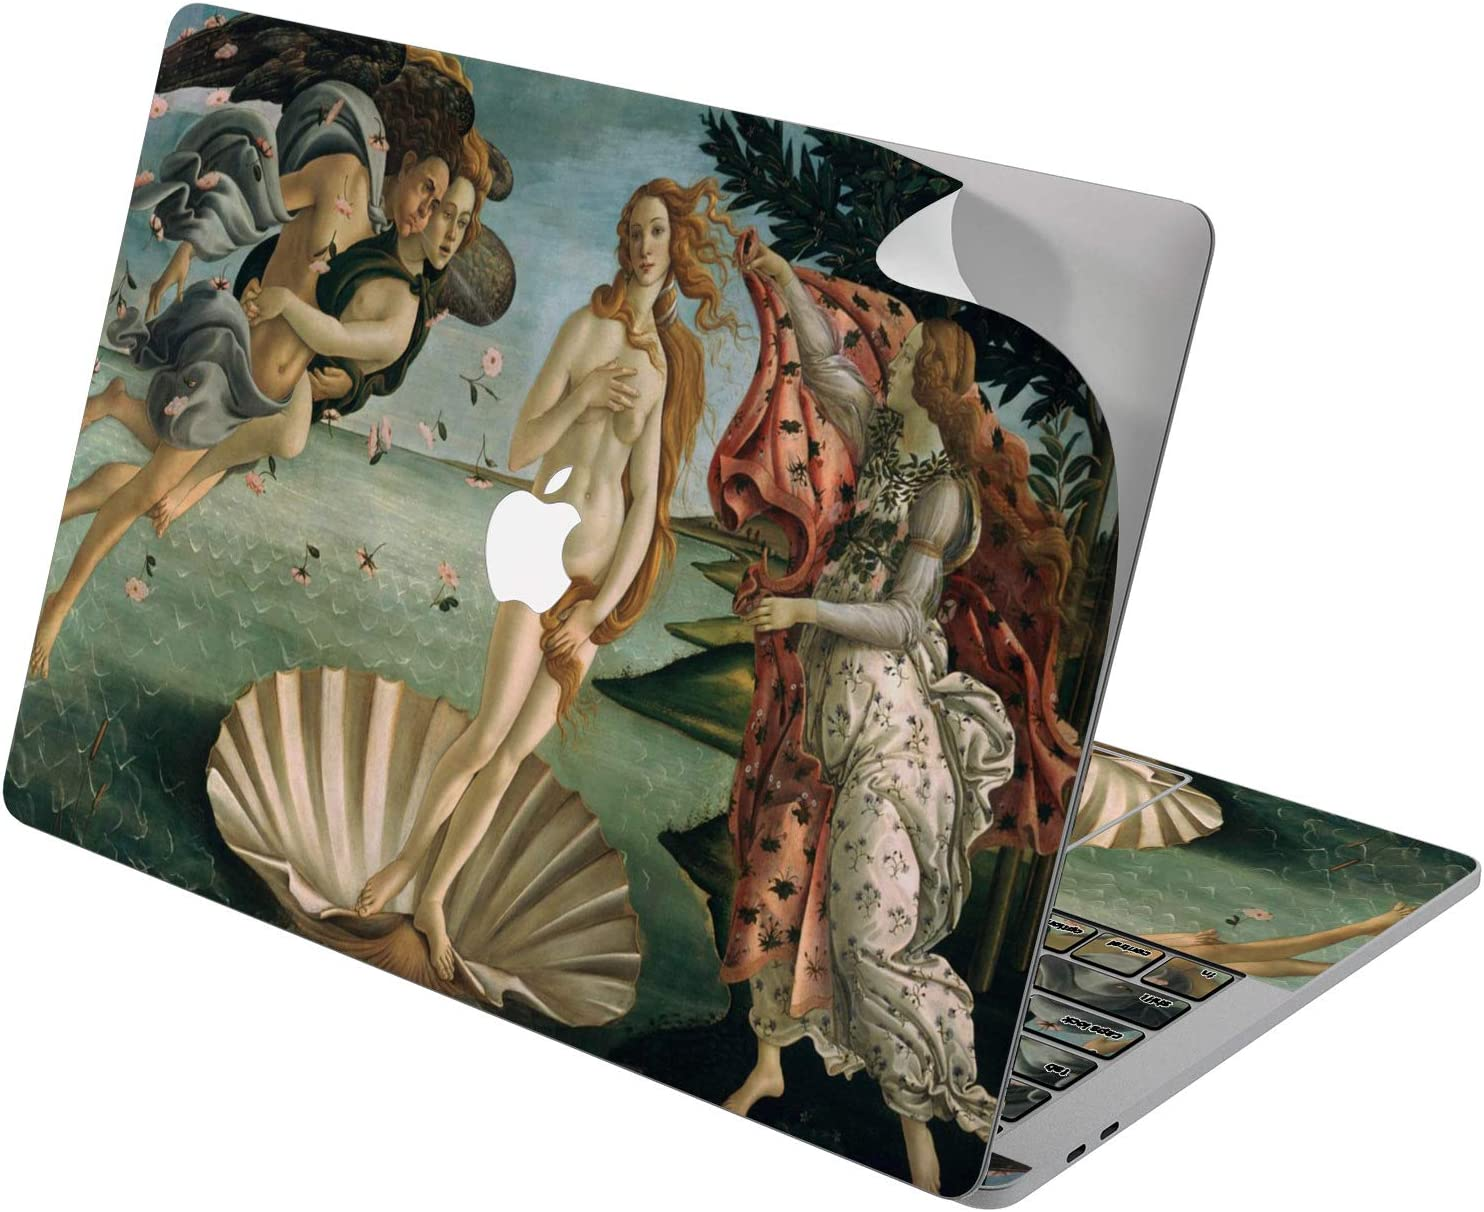 "Cavka Vinyl Decal Skin for Apple MacBook Pro 13"" 2019 15"" 2018 Air 13"" 2020 Retina 2015 Mac 11"" Mac 12"" Sticker The Birth of Venus Art Botticelli Design Painting Laptop Print Antique Cover Protective"